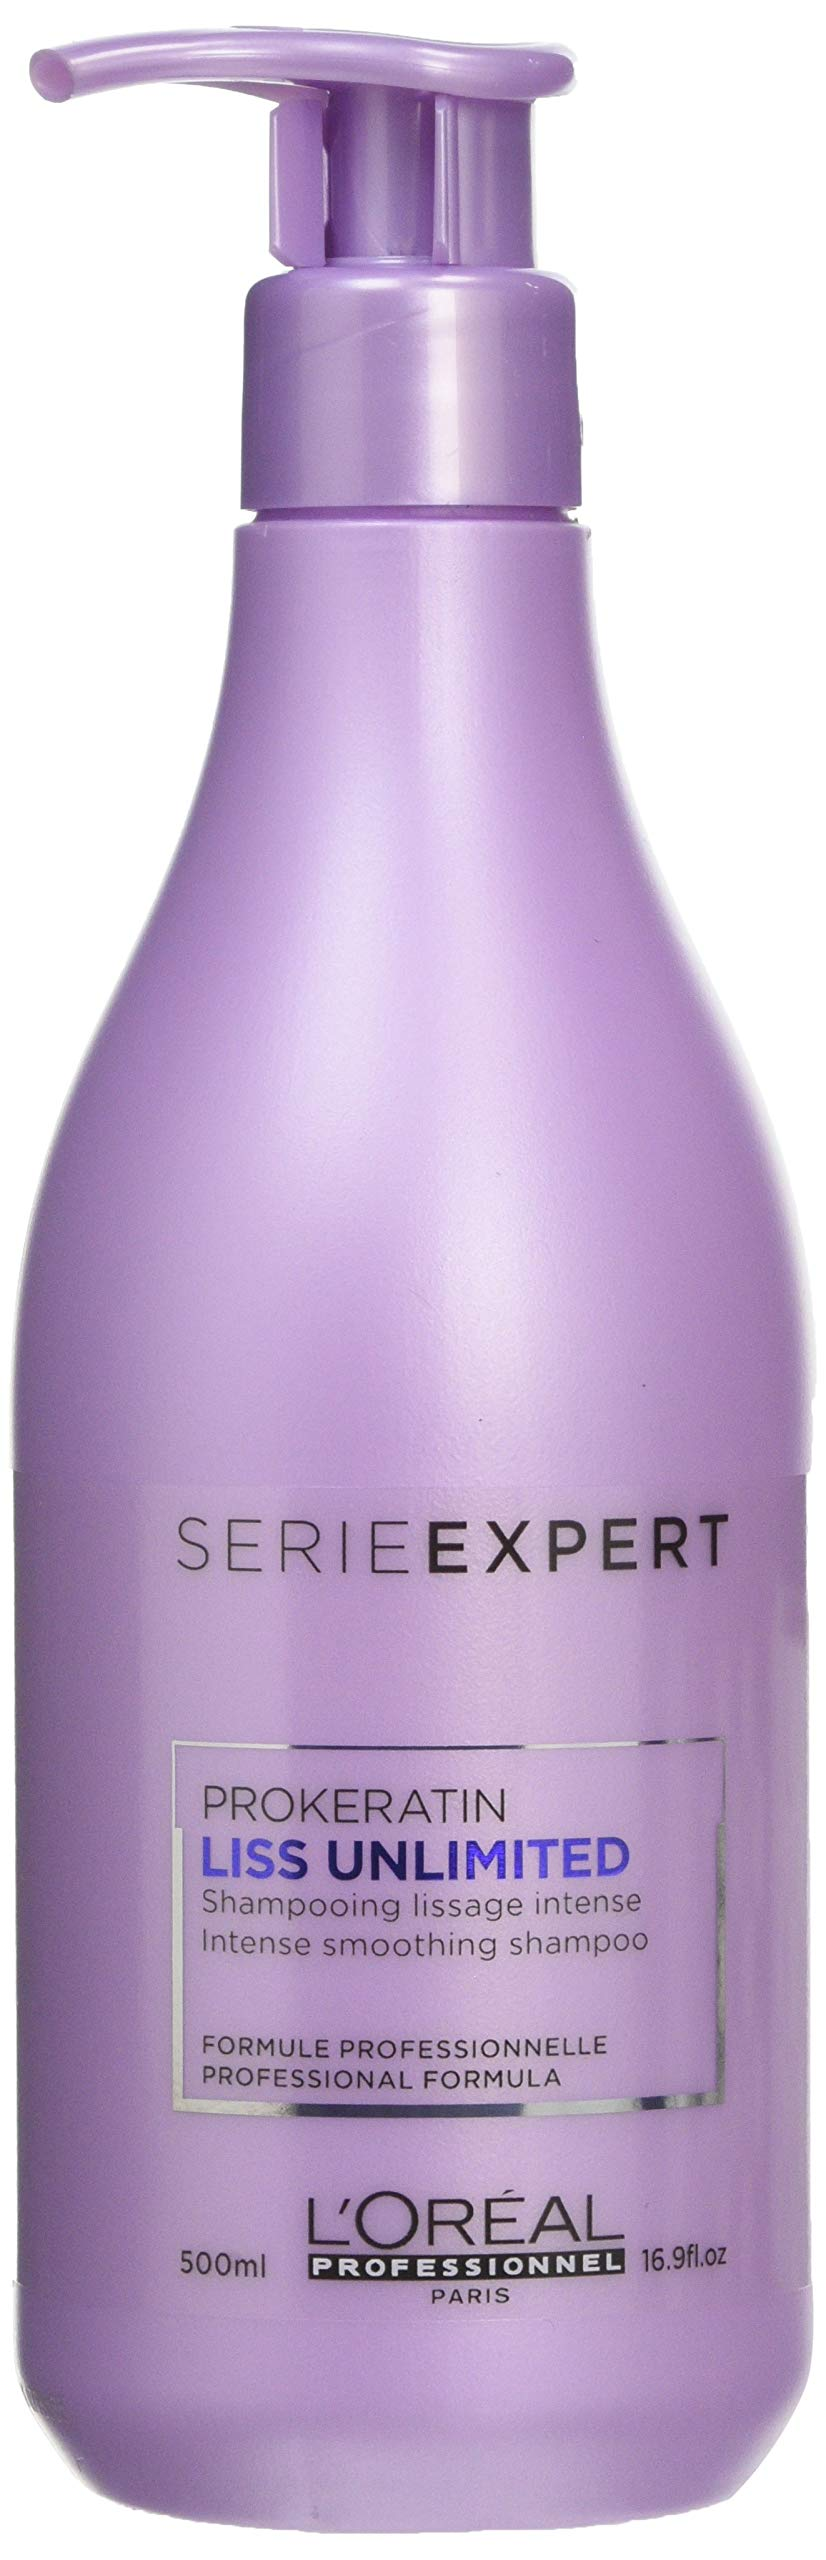 L'Oreal Lis Unlimited Intensive Smoothing Shampoo, 500 ml, 2525468